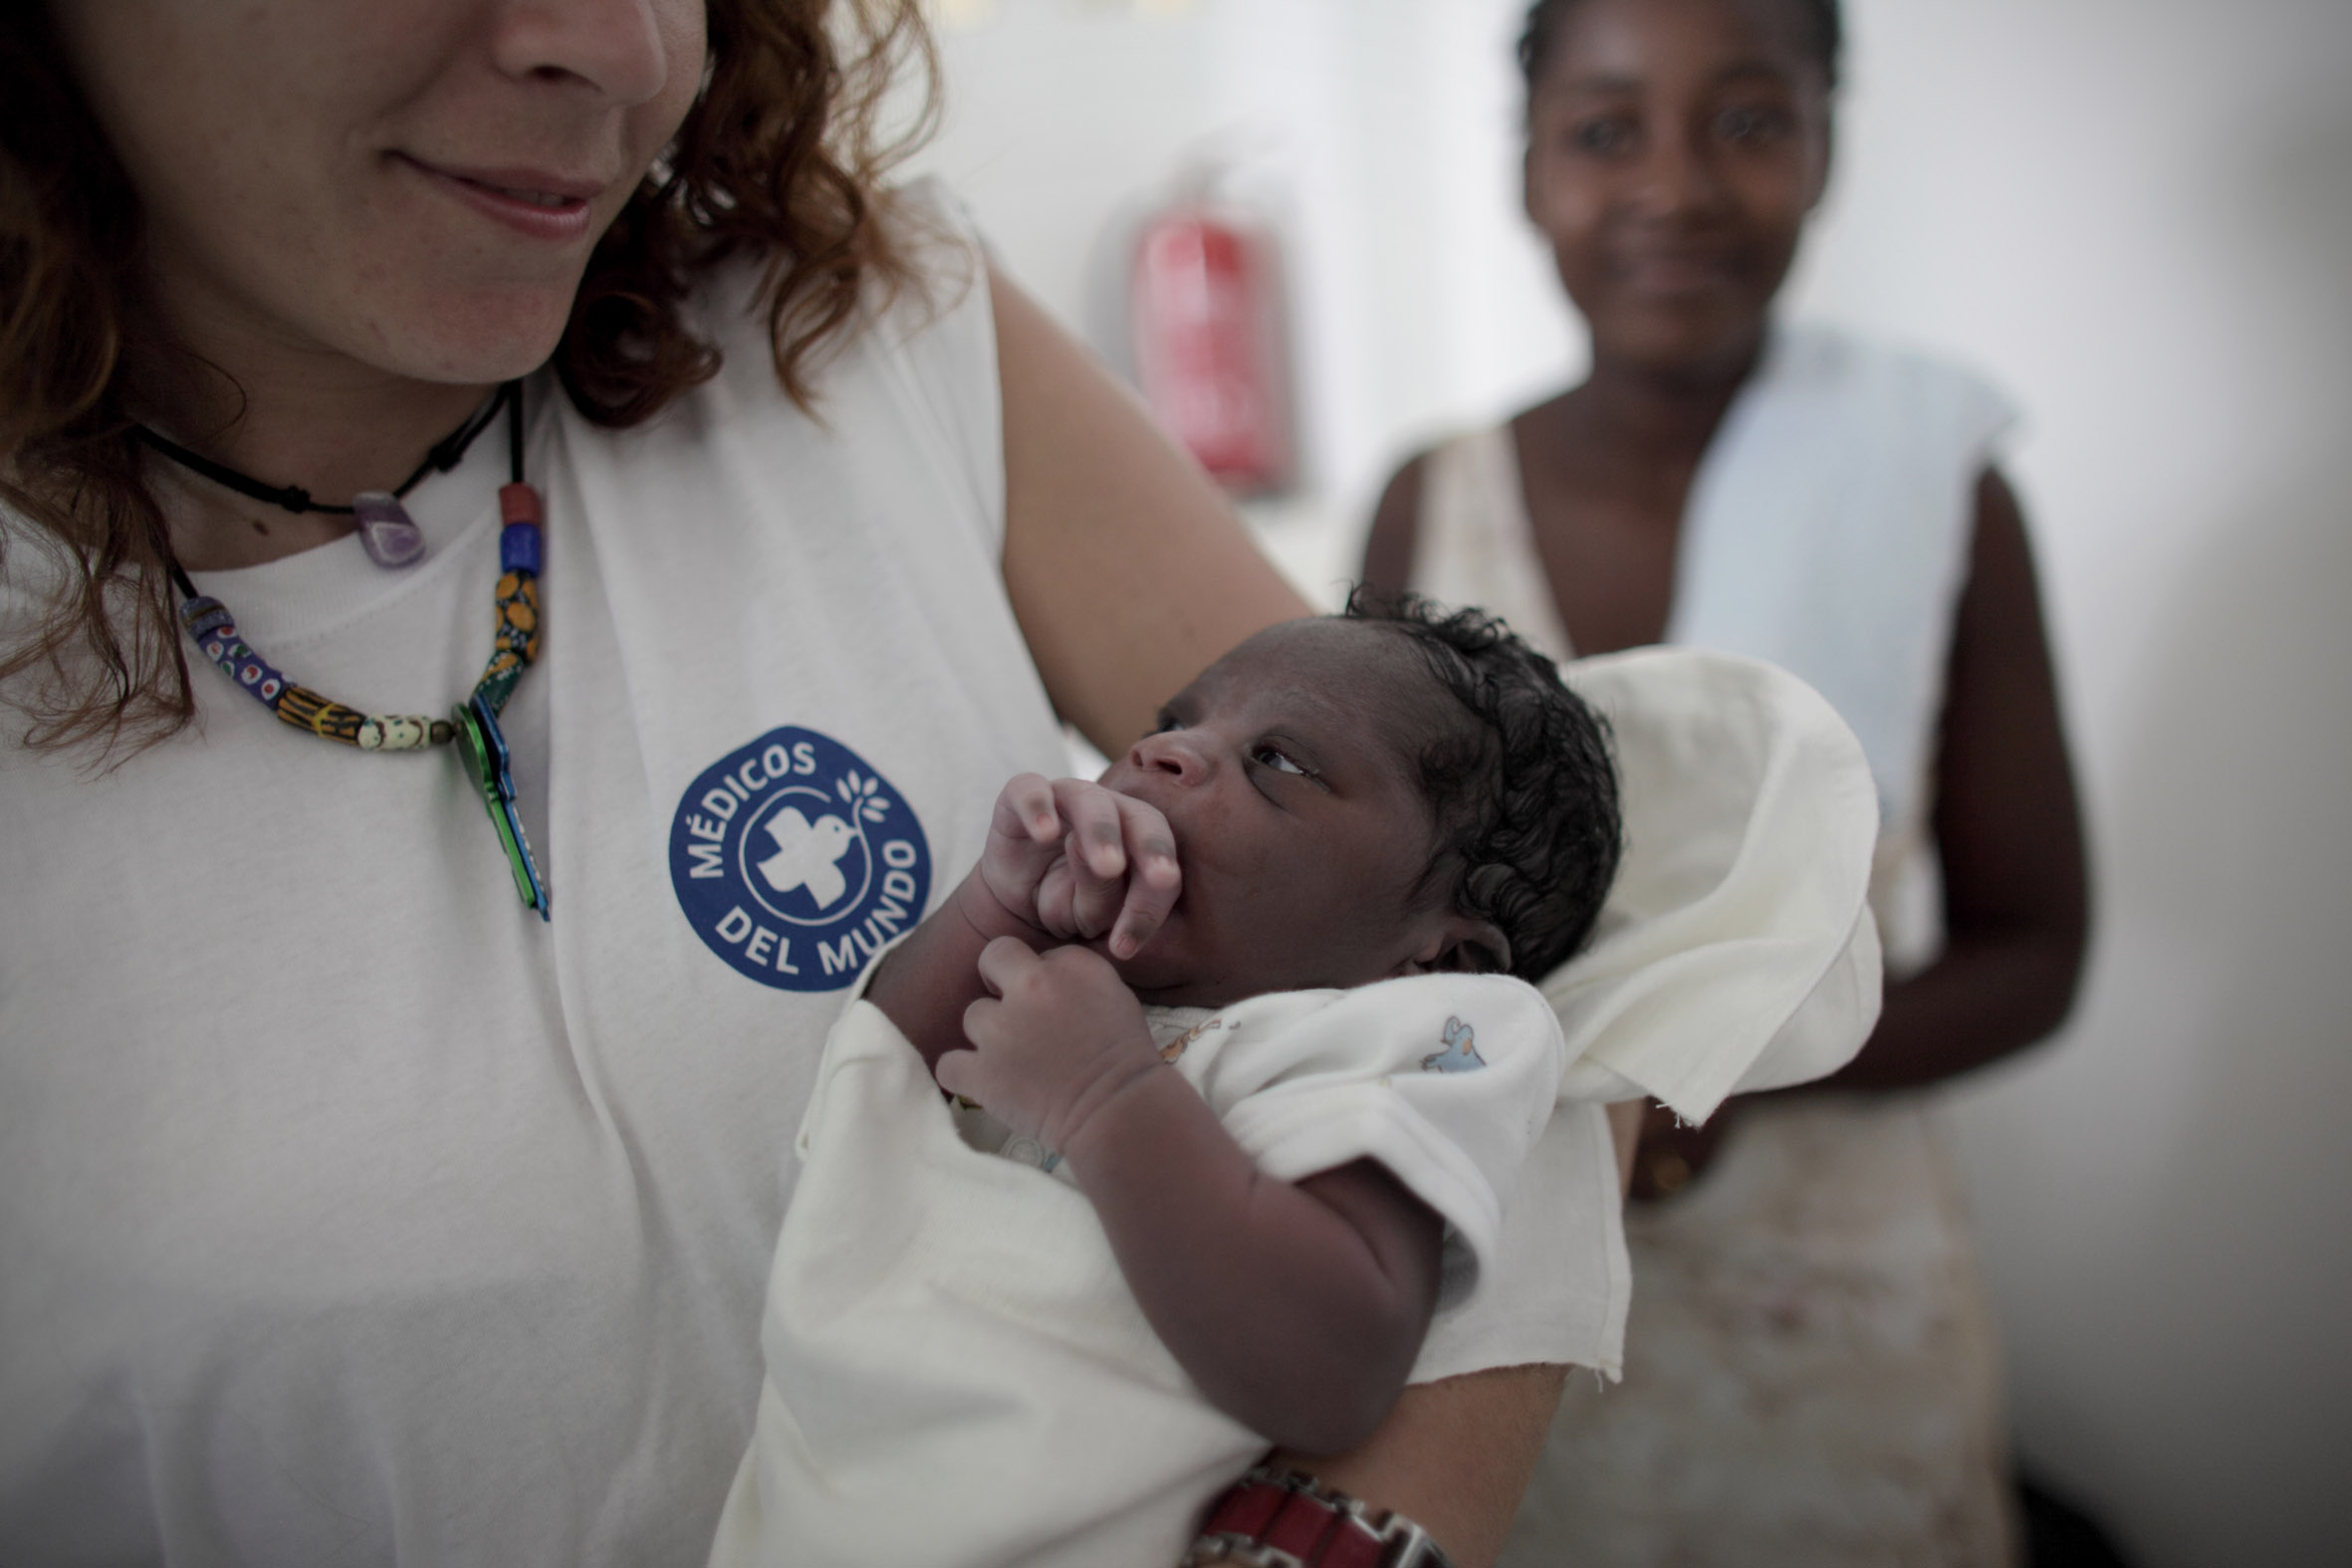 Mutter-Kind-Gesundheit in Haiti. Foto: Sophie Brandstrom